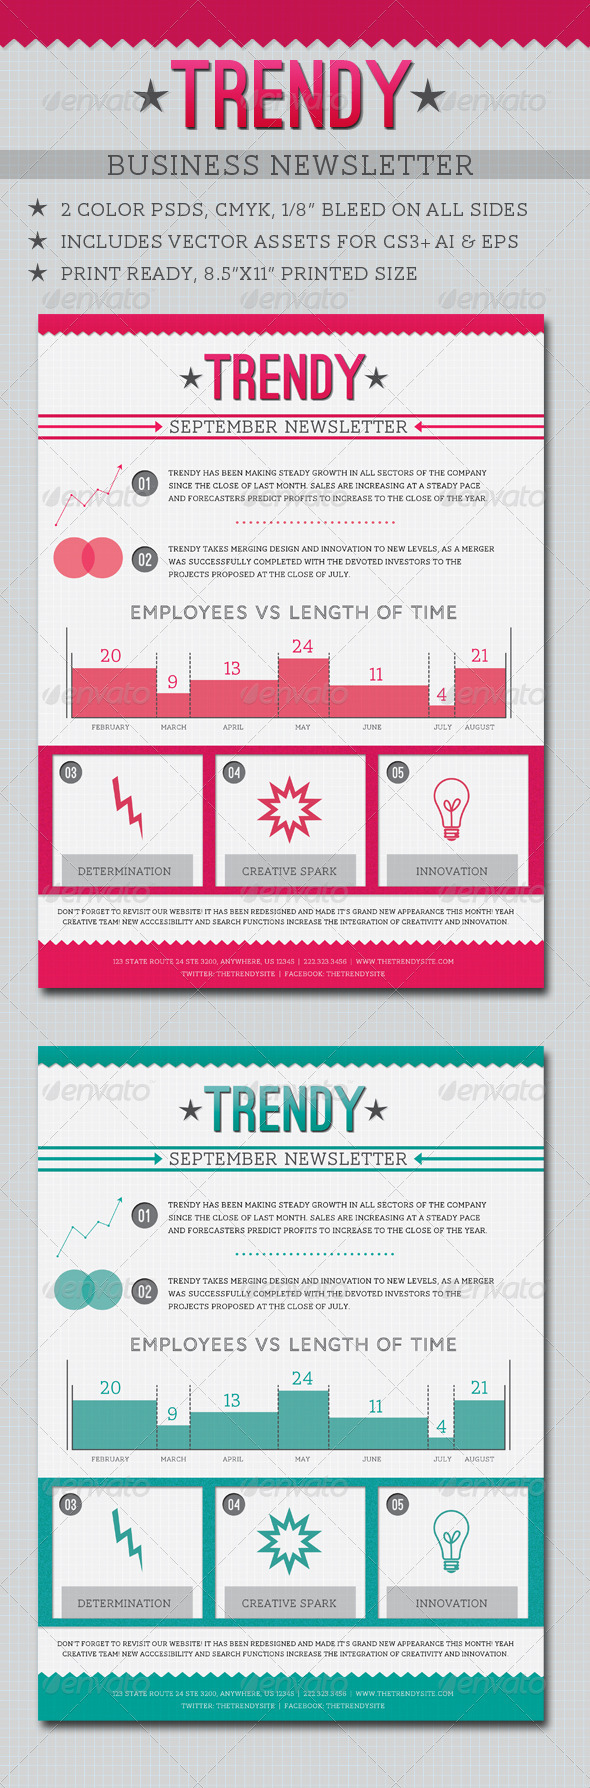 Trendy Business Newsletter - Newsletters Print Templates